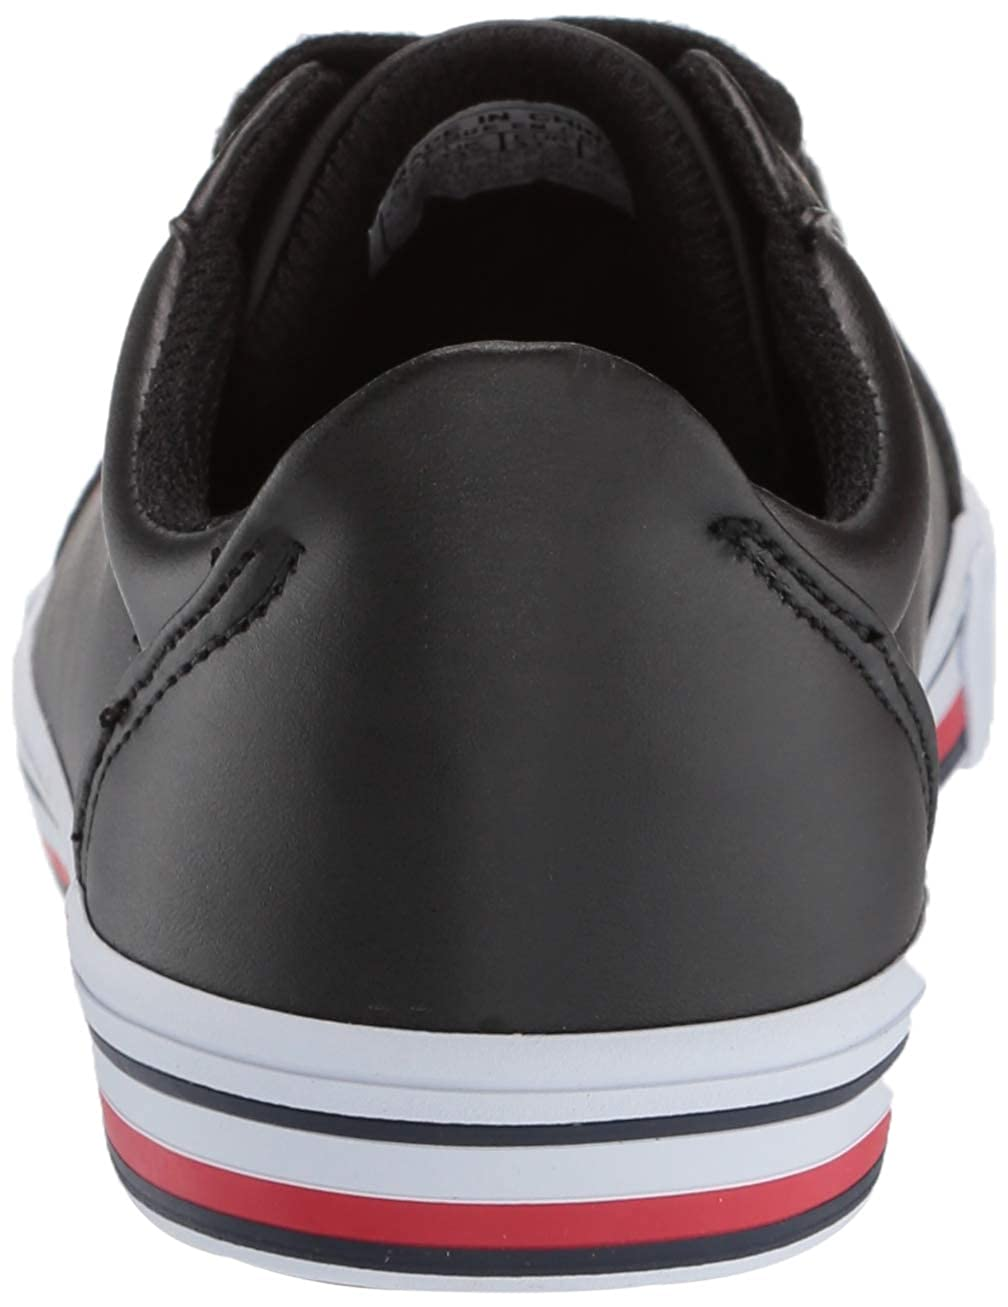 713d774b4cd13 Tommy Hilfiger Little/Big Boy's Heritage White Sneakers Shoes